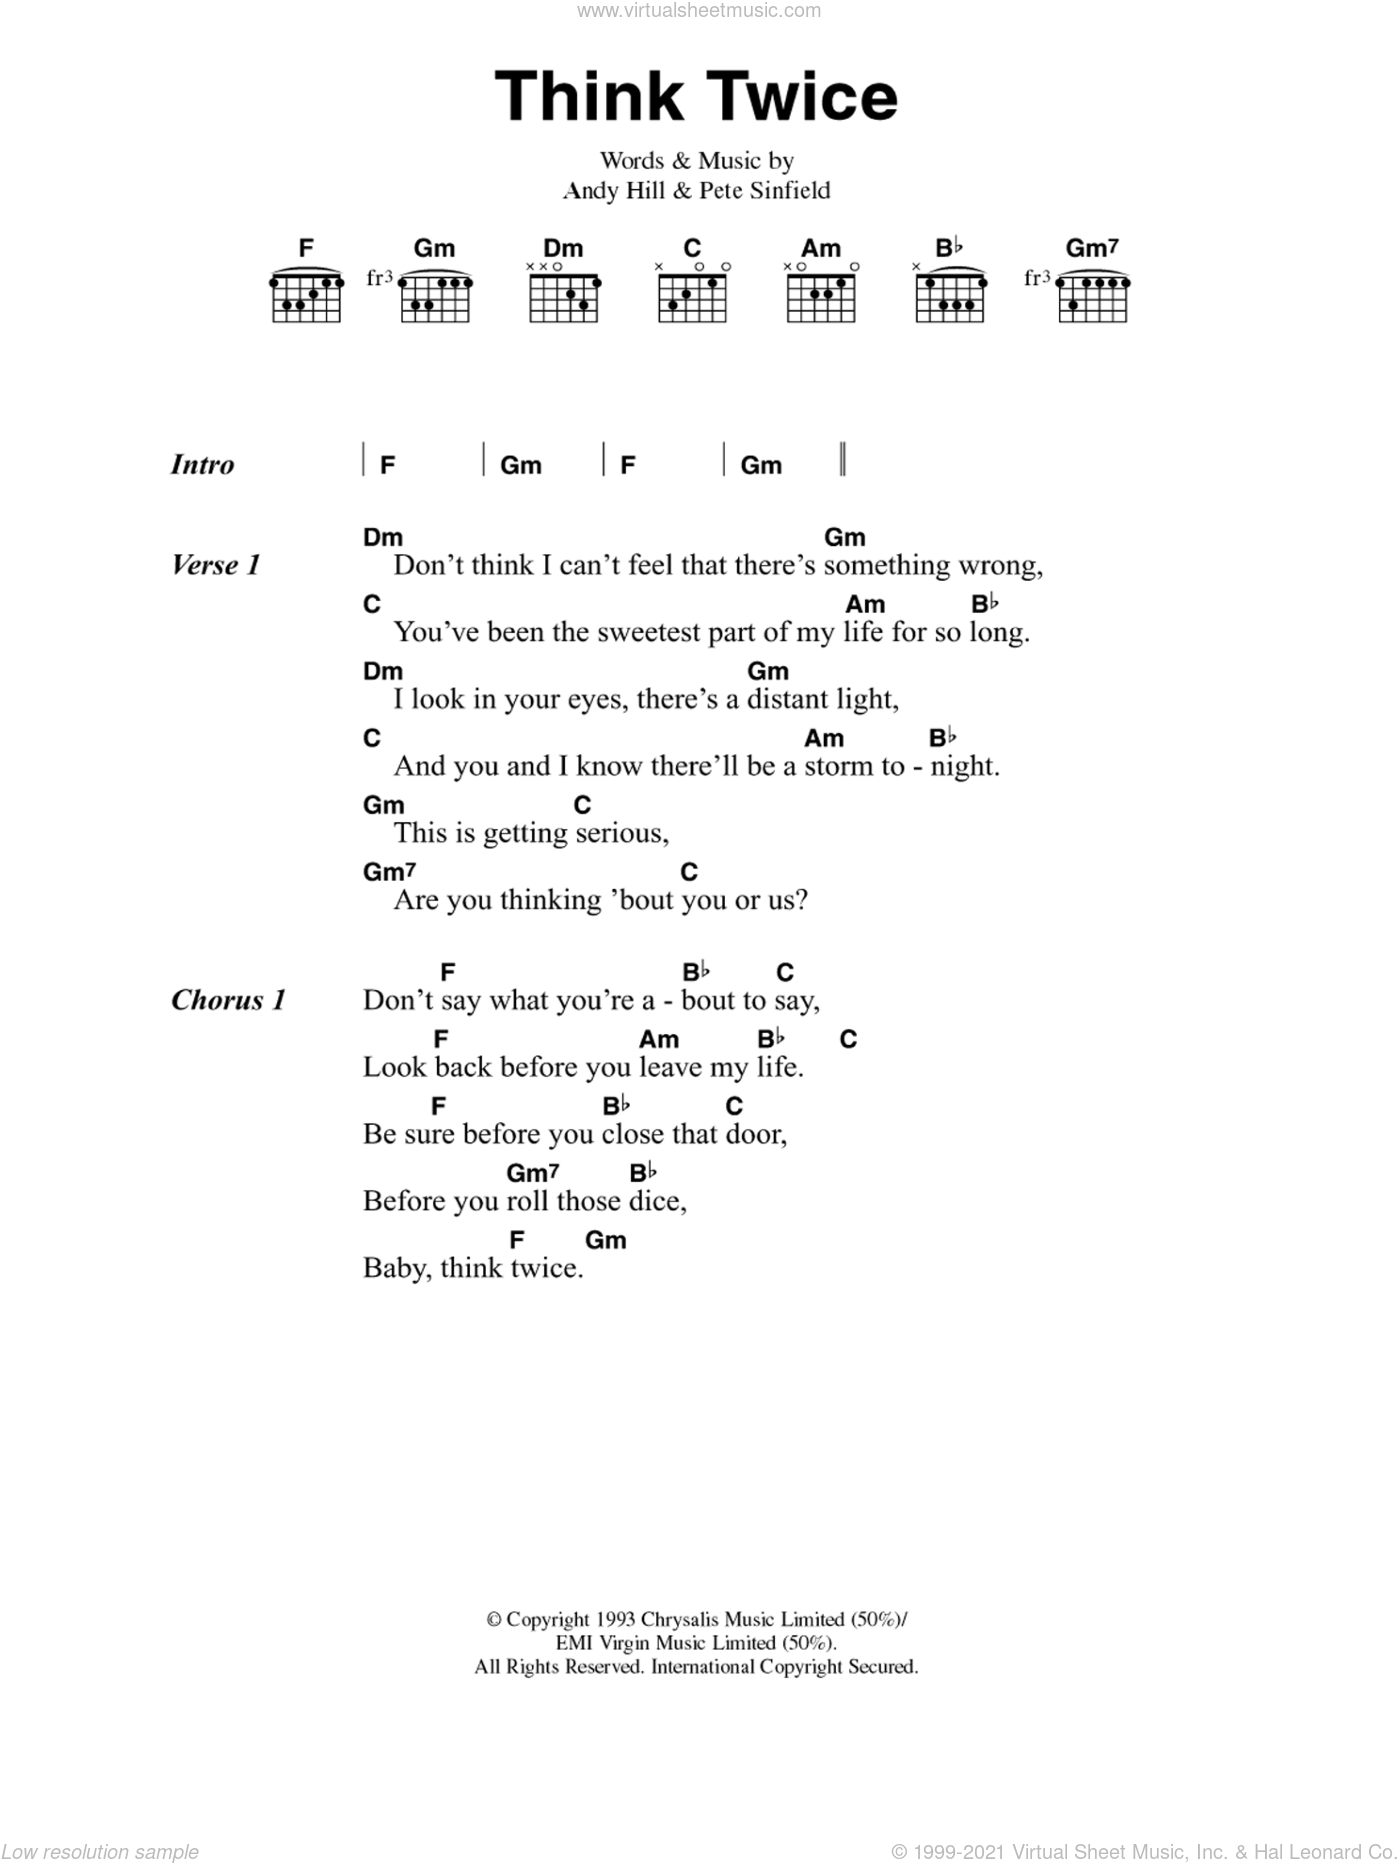 Think Twice sheet music for guitar (chords) by Celine Dion, Andy Hill and Pete Sinfield, intermediate